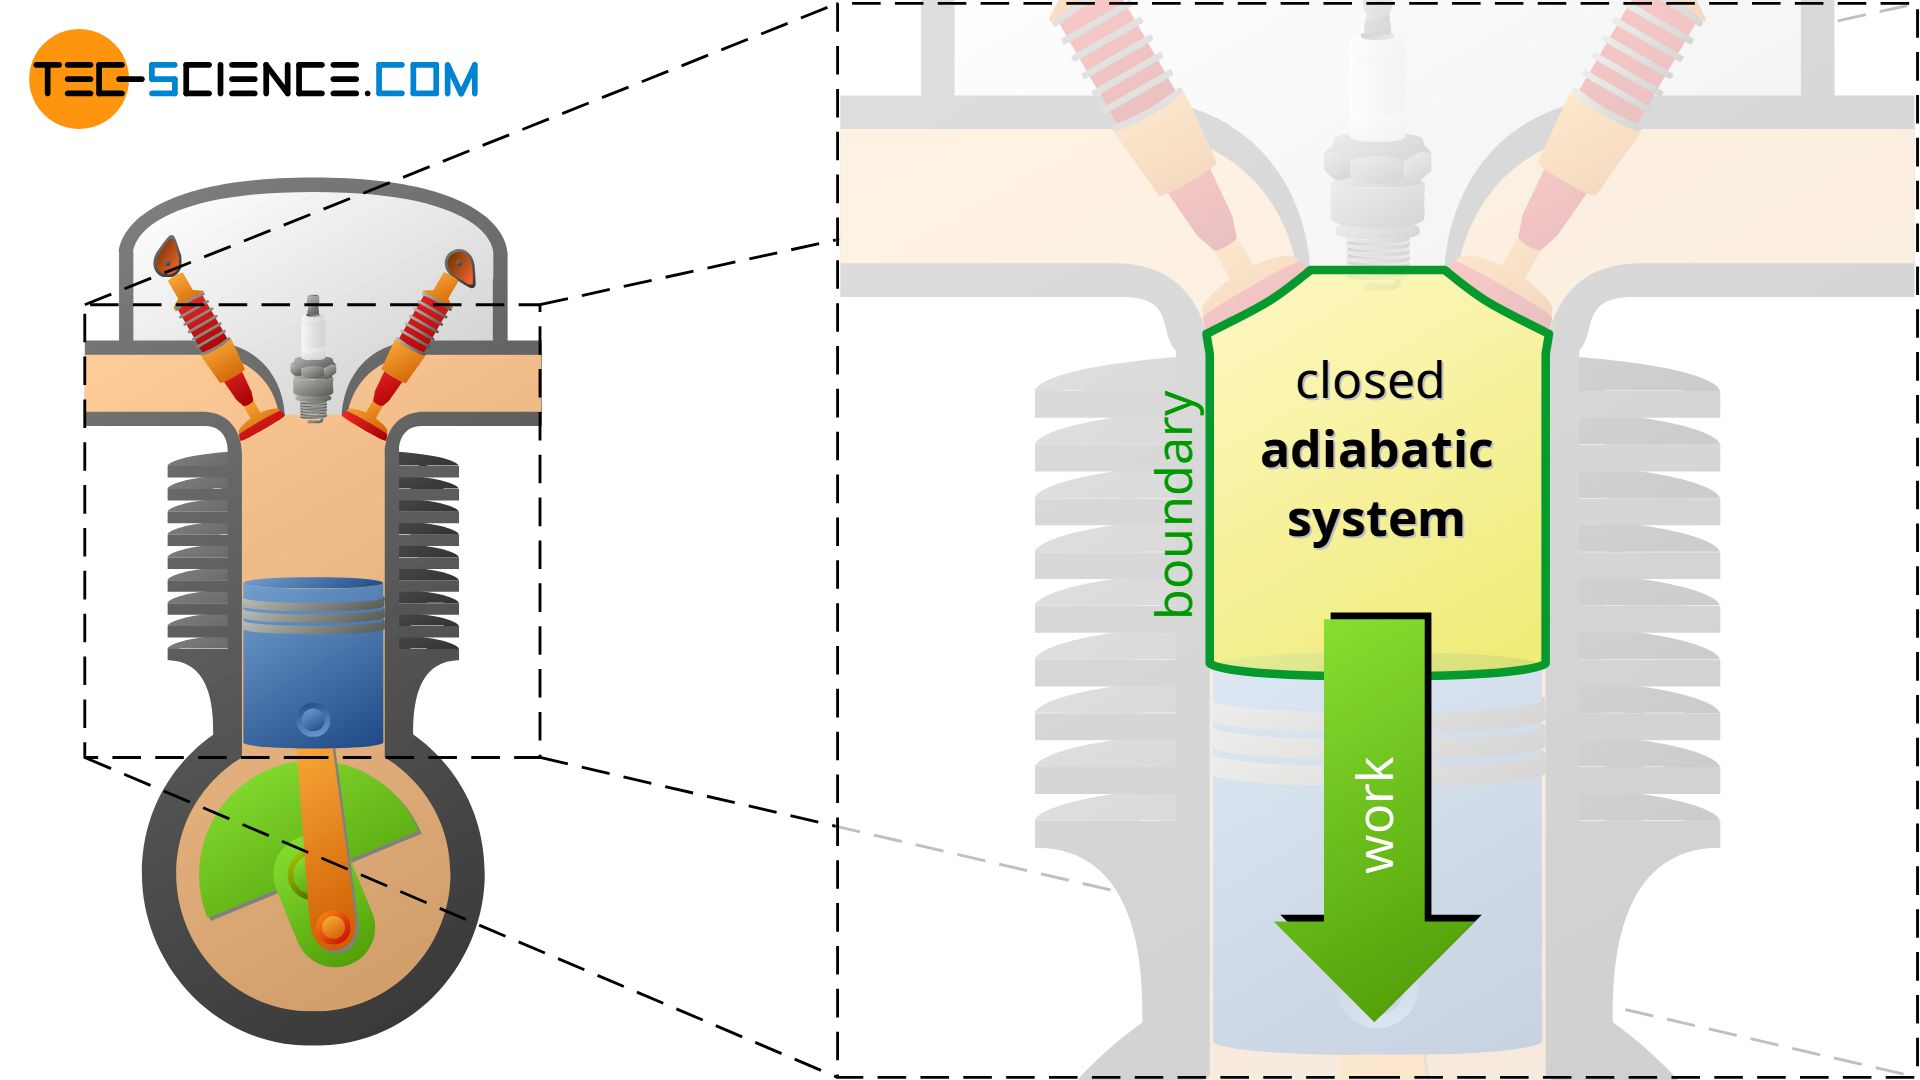 4-stroke internal combustion engine during power stroke as an example of a closed adiabatic system